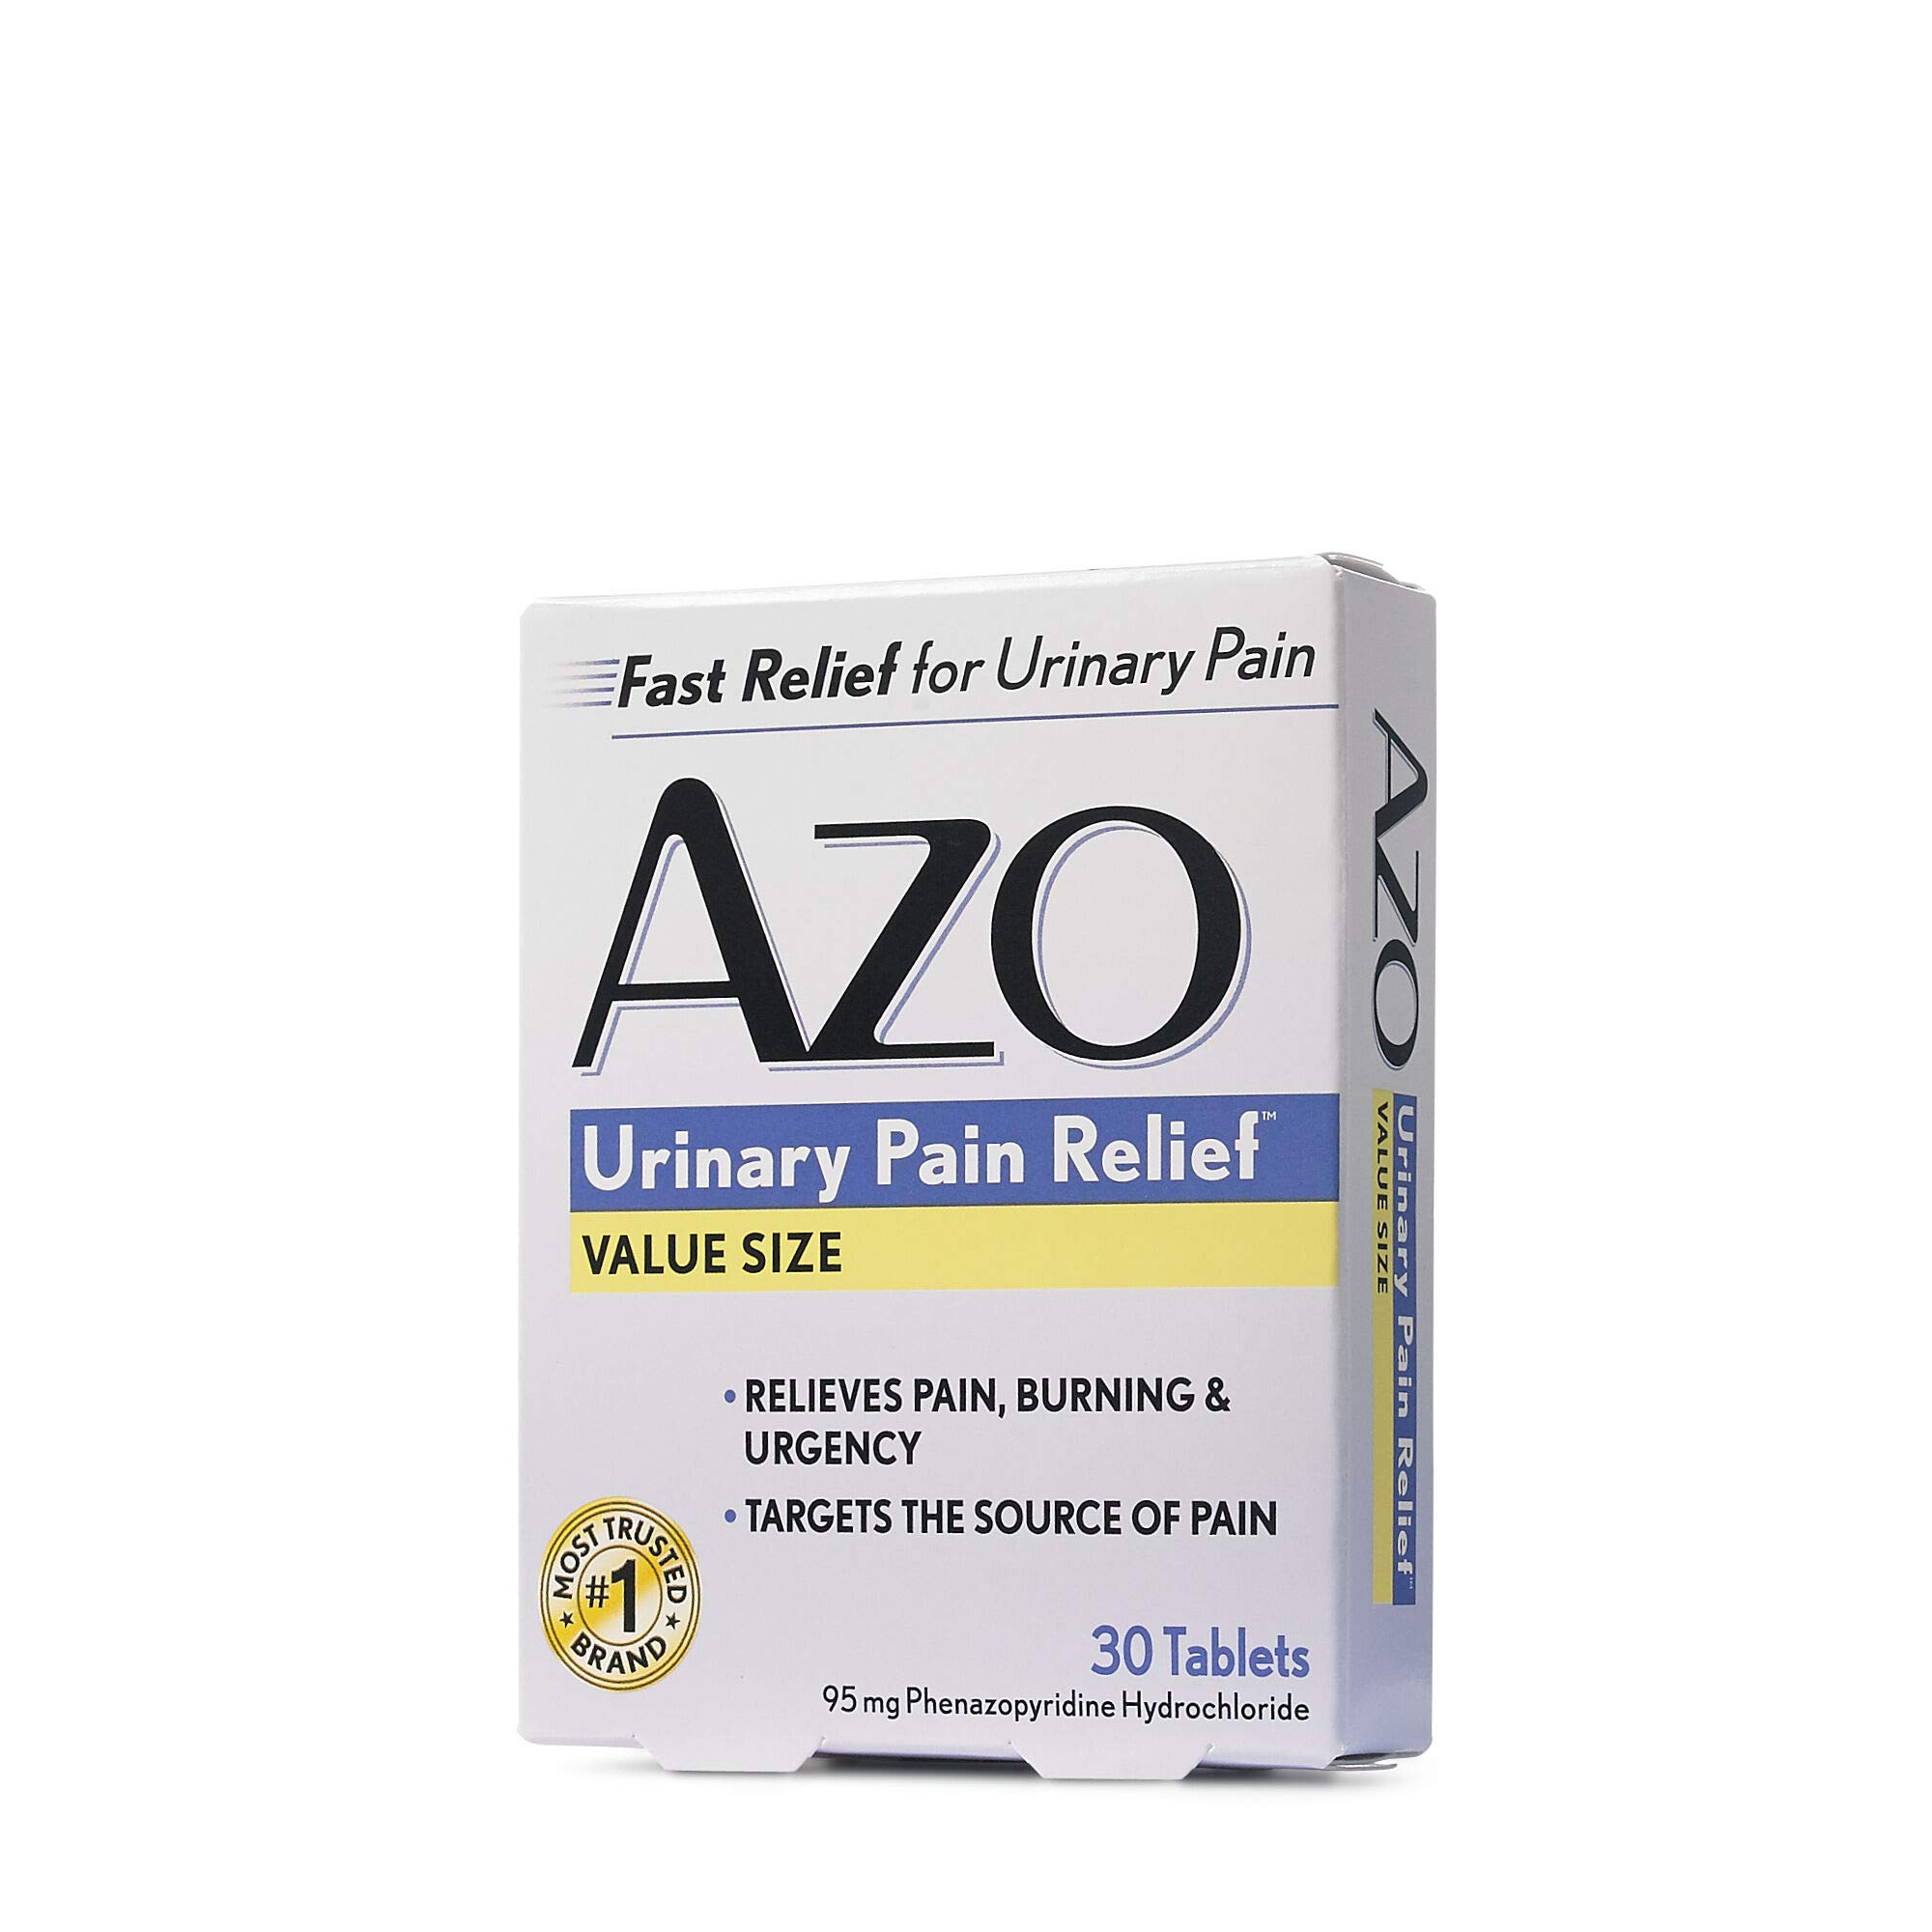 AZO Urinary Pain Relief, Dietary Supplement, Contains 95 mg Phenazopyridine Hydrochloride The #1 Ingredient Prescribed by Doctors Pharmacists Specifically for Urinary Discomfort†, 30 Count